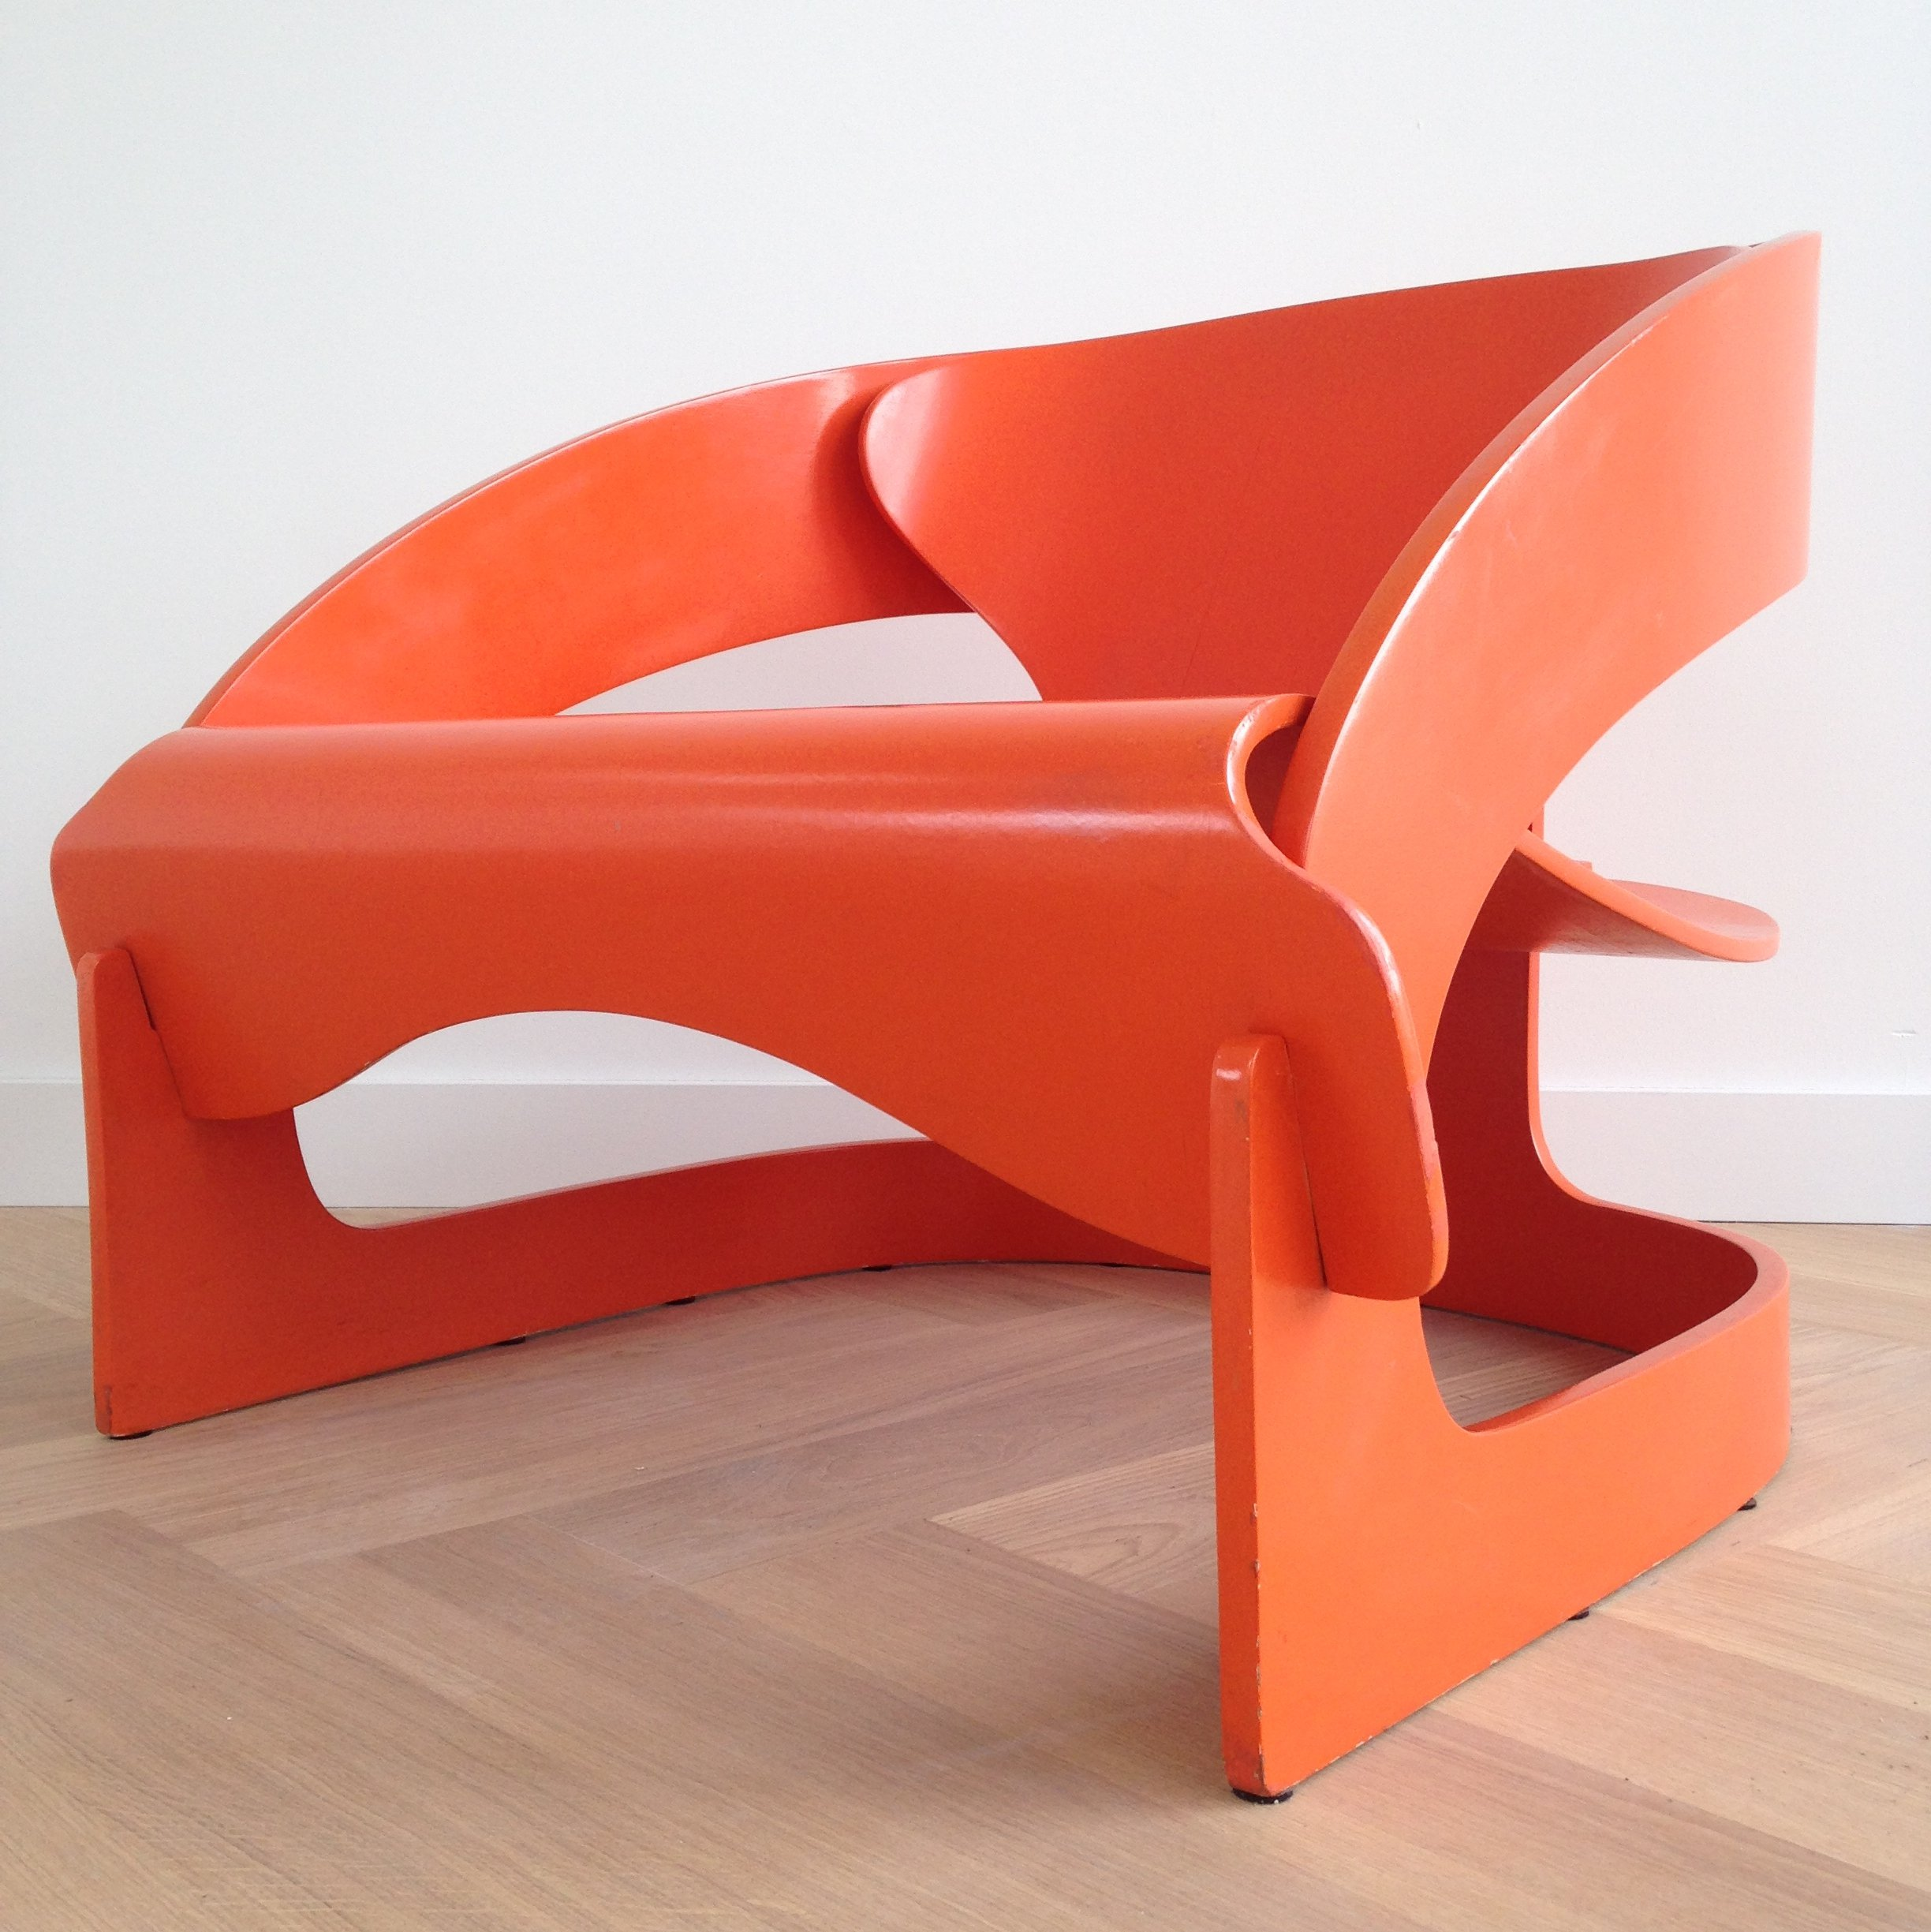 Model 4801 Arm Chair By Joe Colombo For Kartell 1960s 110149